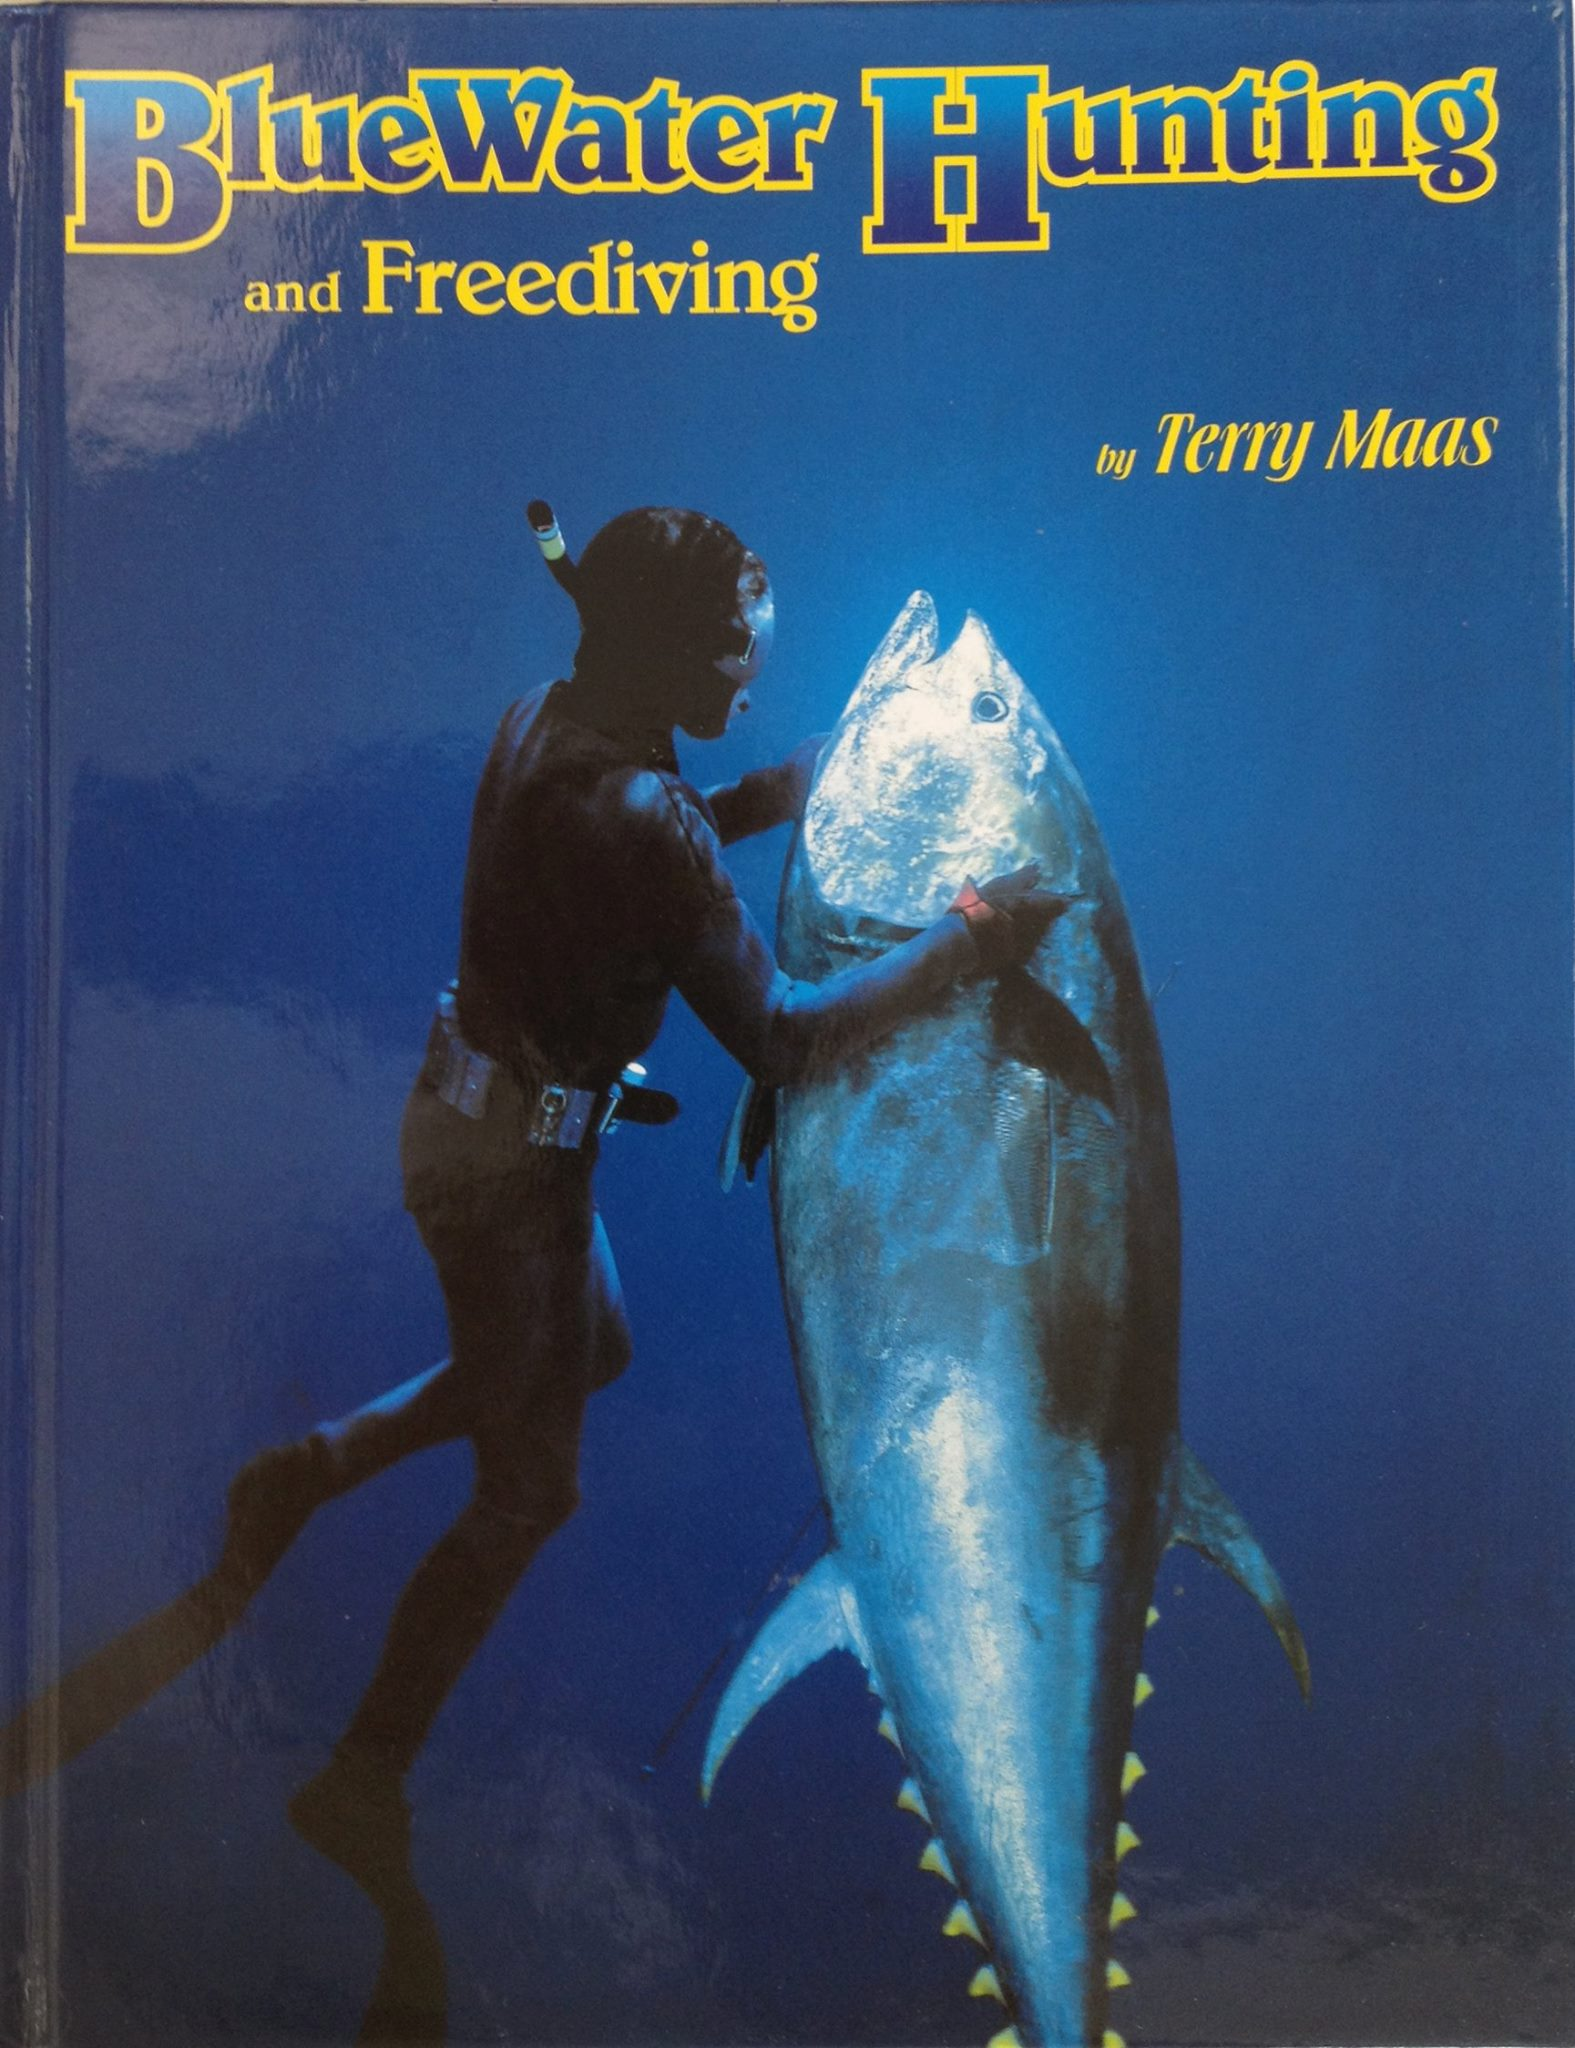 Terry Maas' BlueWater Hunting and Freediving now available in digital form.